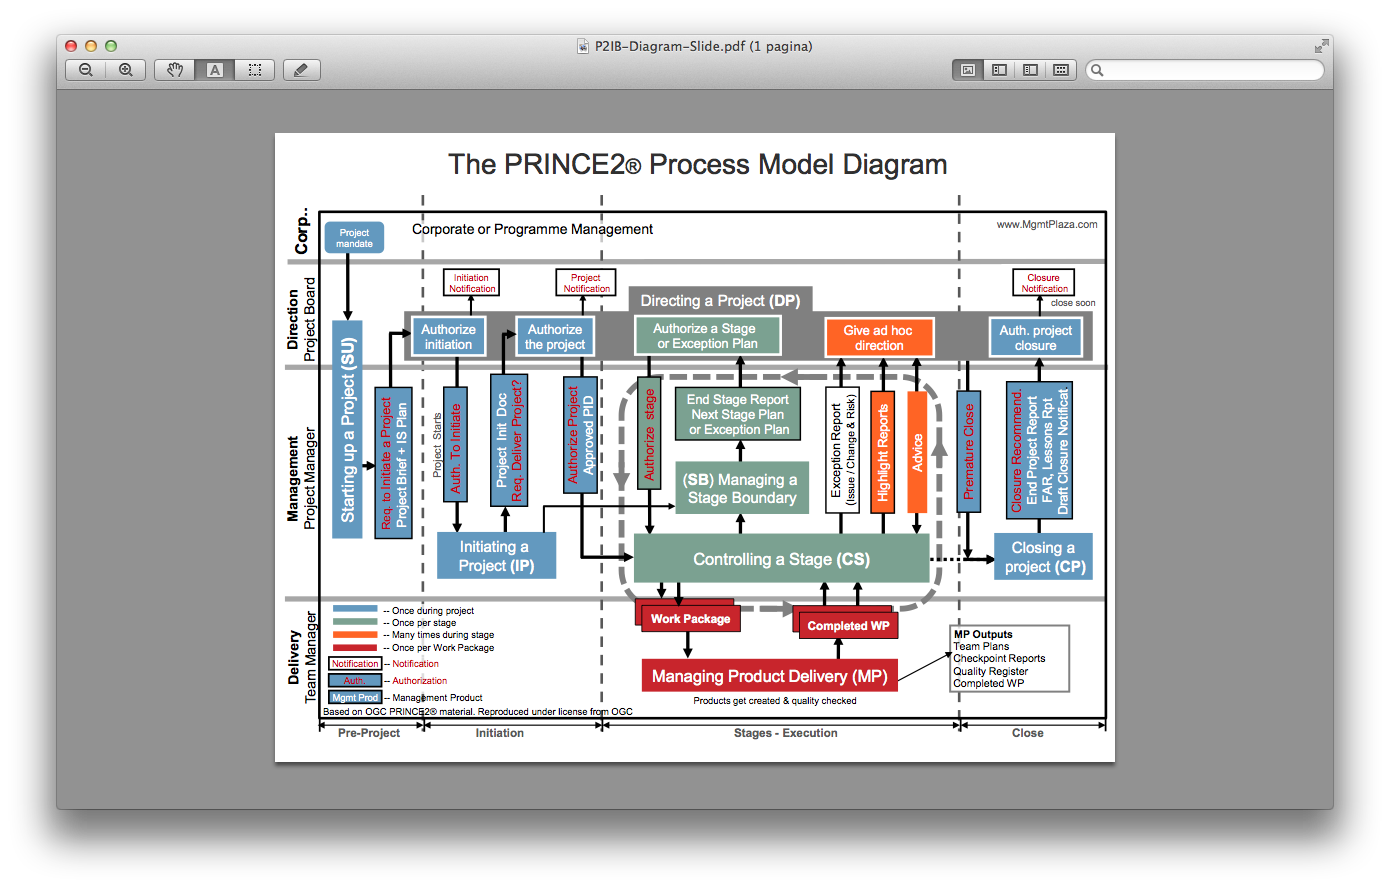 prince2 process flow diagram 2014 prince2 in picture henny portman s blog  prince2 in picture henny portman s blog